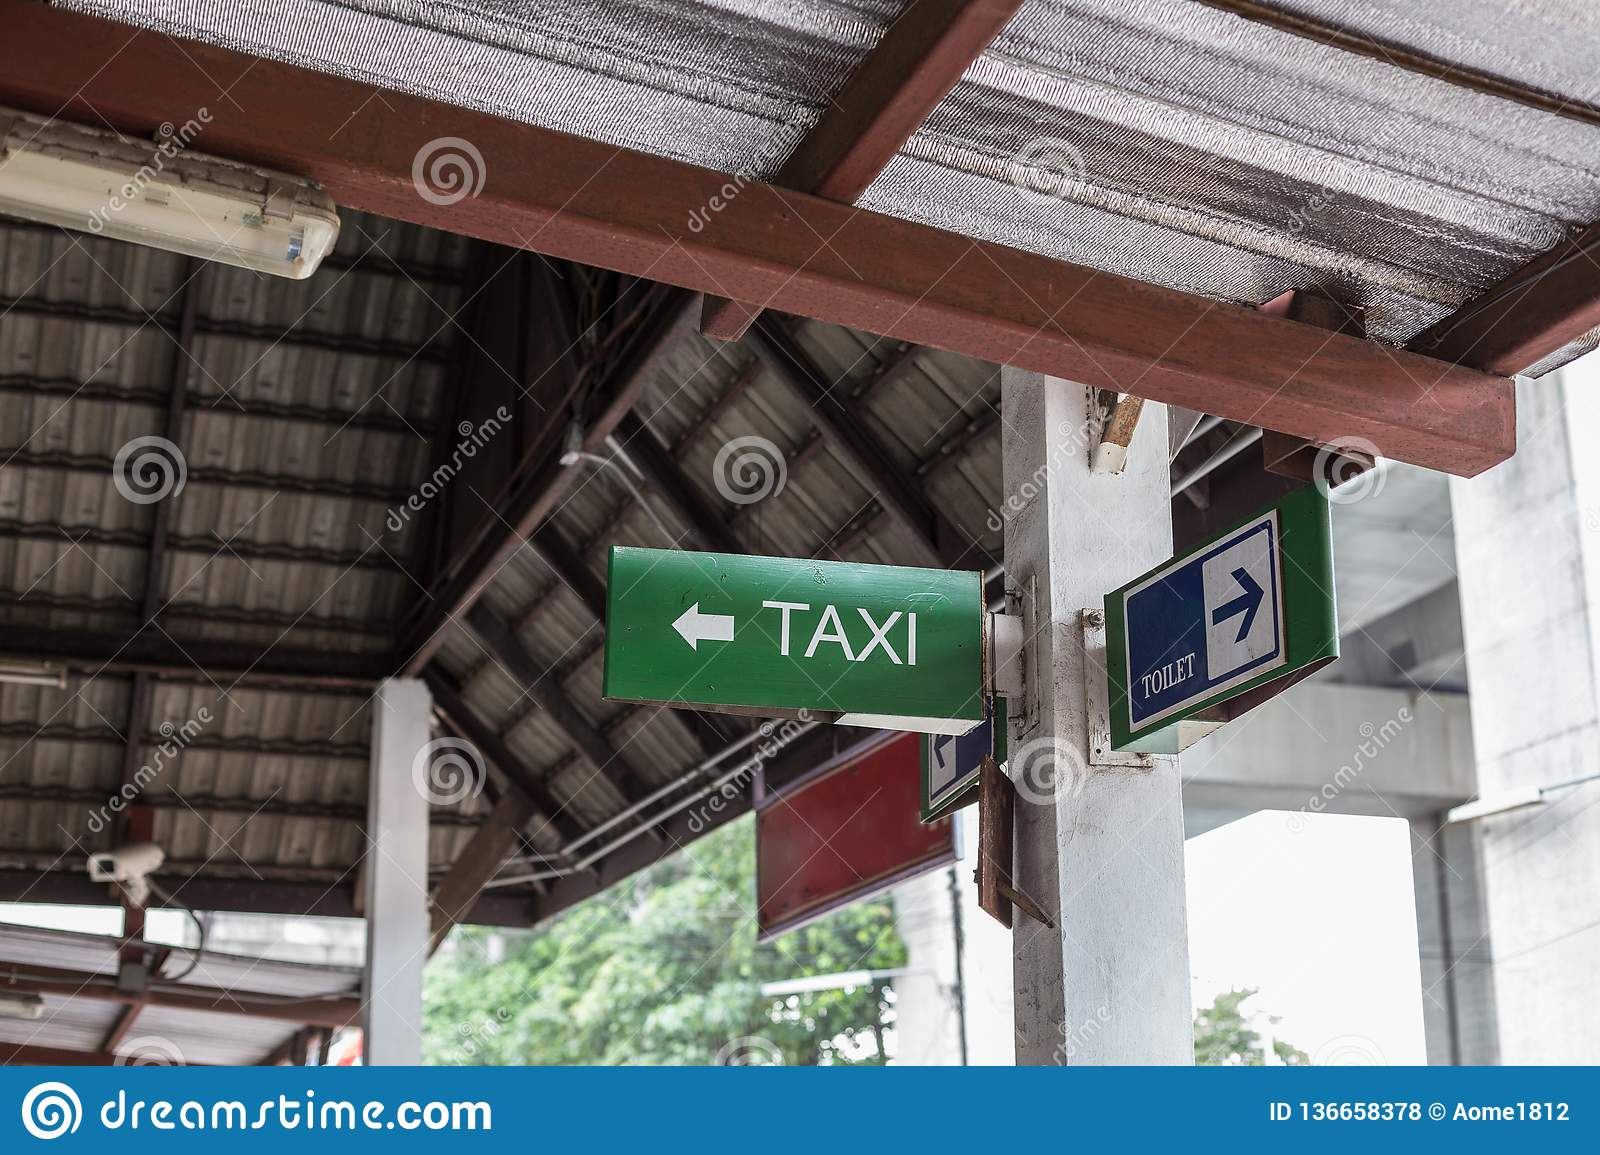 Sign For Bathroom Taxi Signs And Bathroom Signs Stock Photo Image Of People